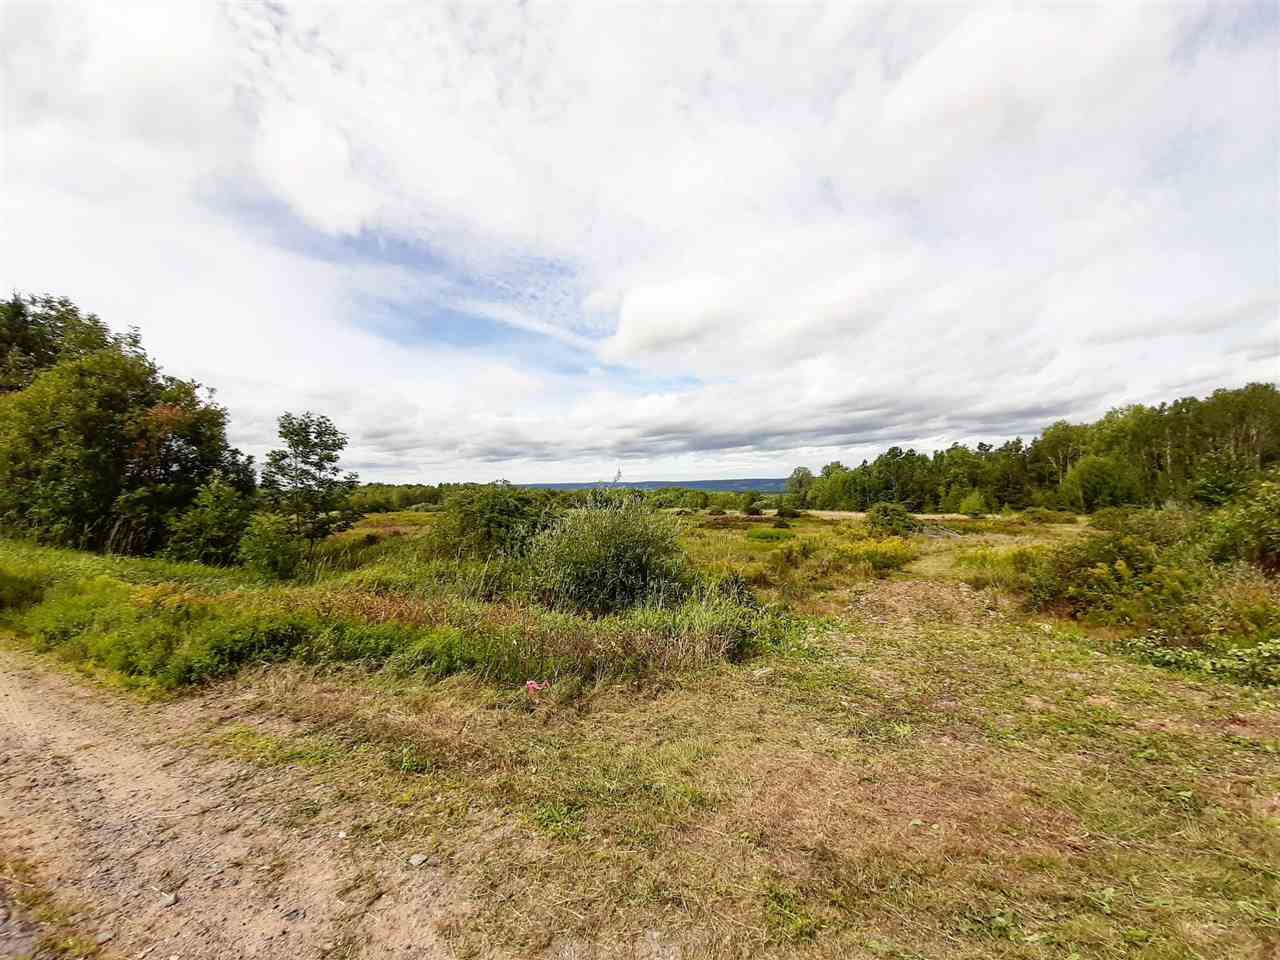 Main Photo: Lot Harmony Road in Harmony: 404-Kings County Vacant Land for sale (Annapolis Valley)  : MLS®# 202017765